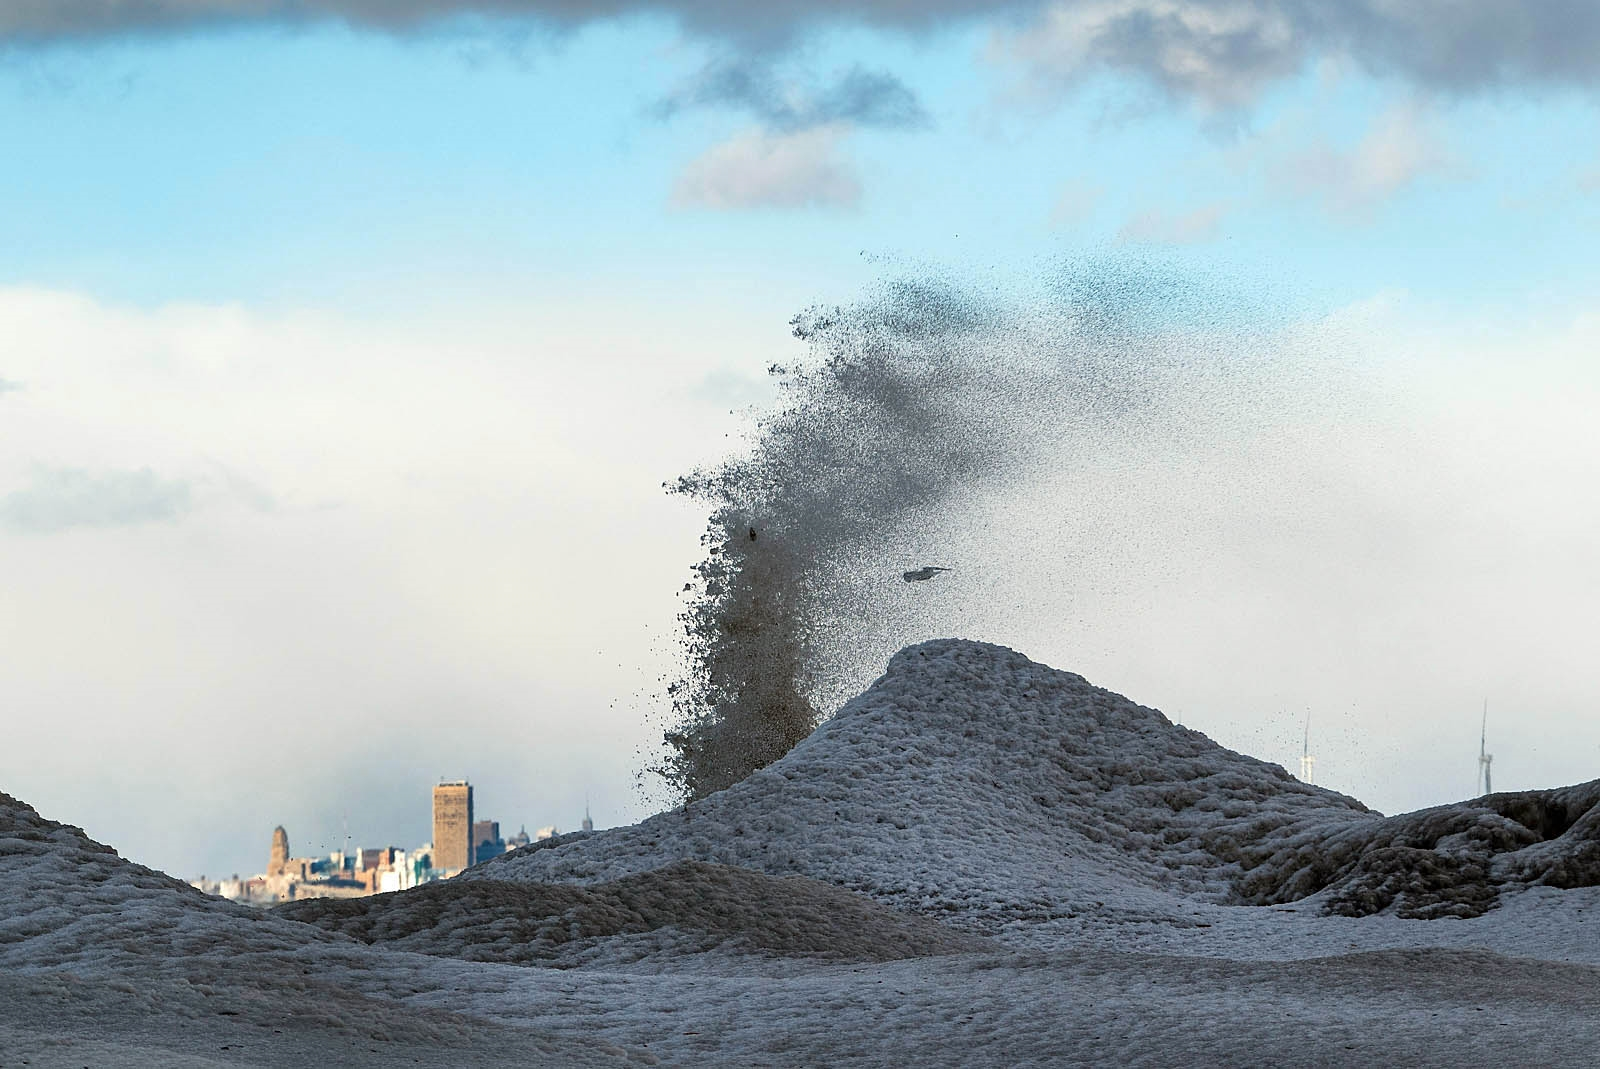 A mature ice volcano can grow as large as a house with a vent a yard or more wide. The Buffalo skyline can be seen in the background of this ice volcano at Hamburg Beach.